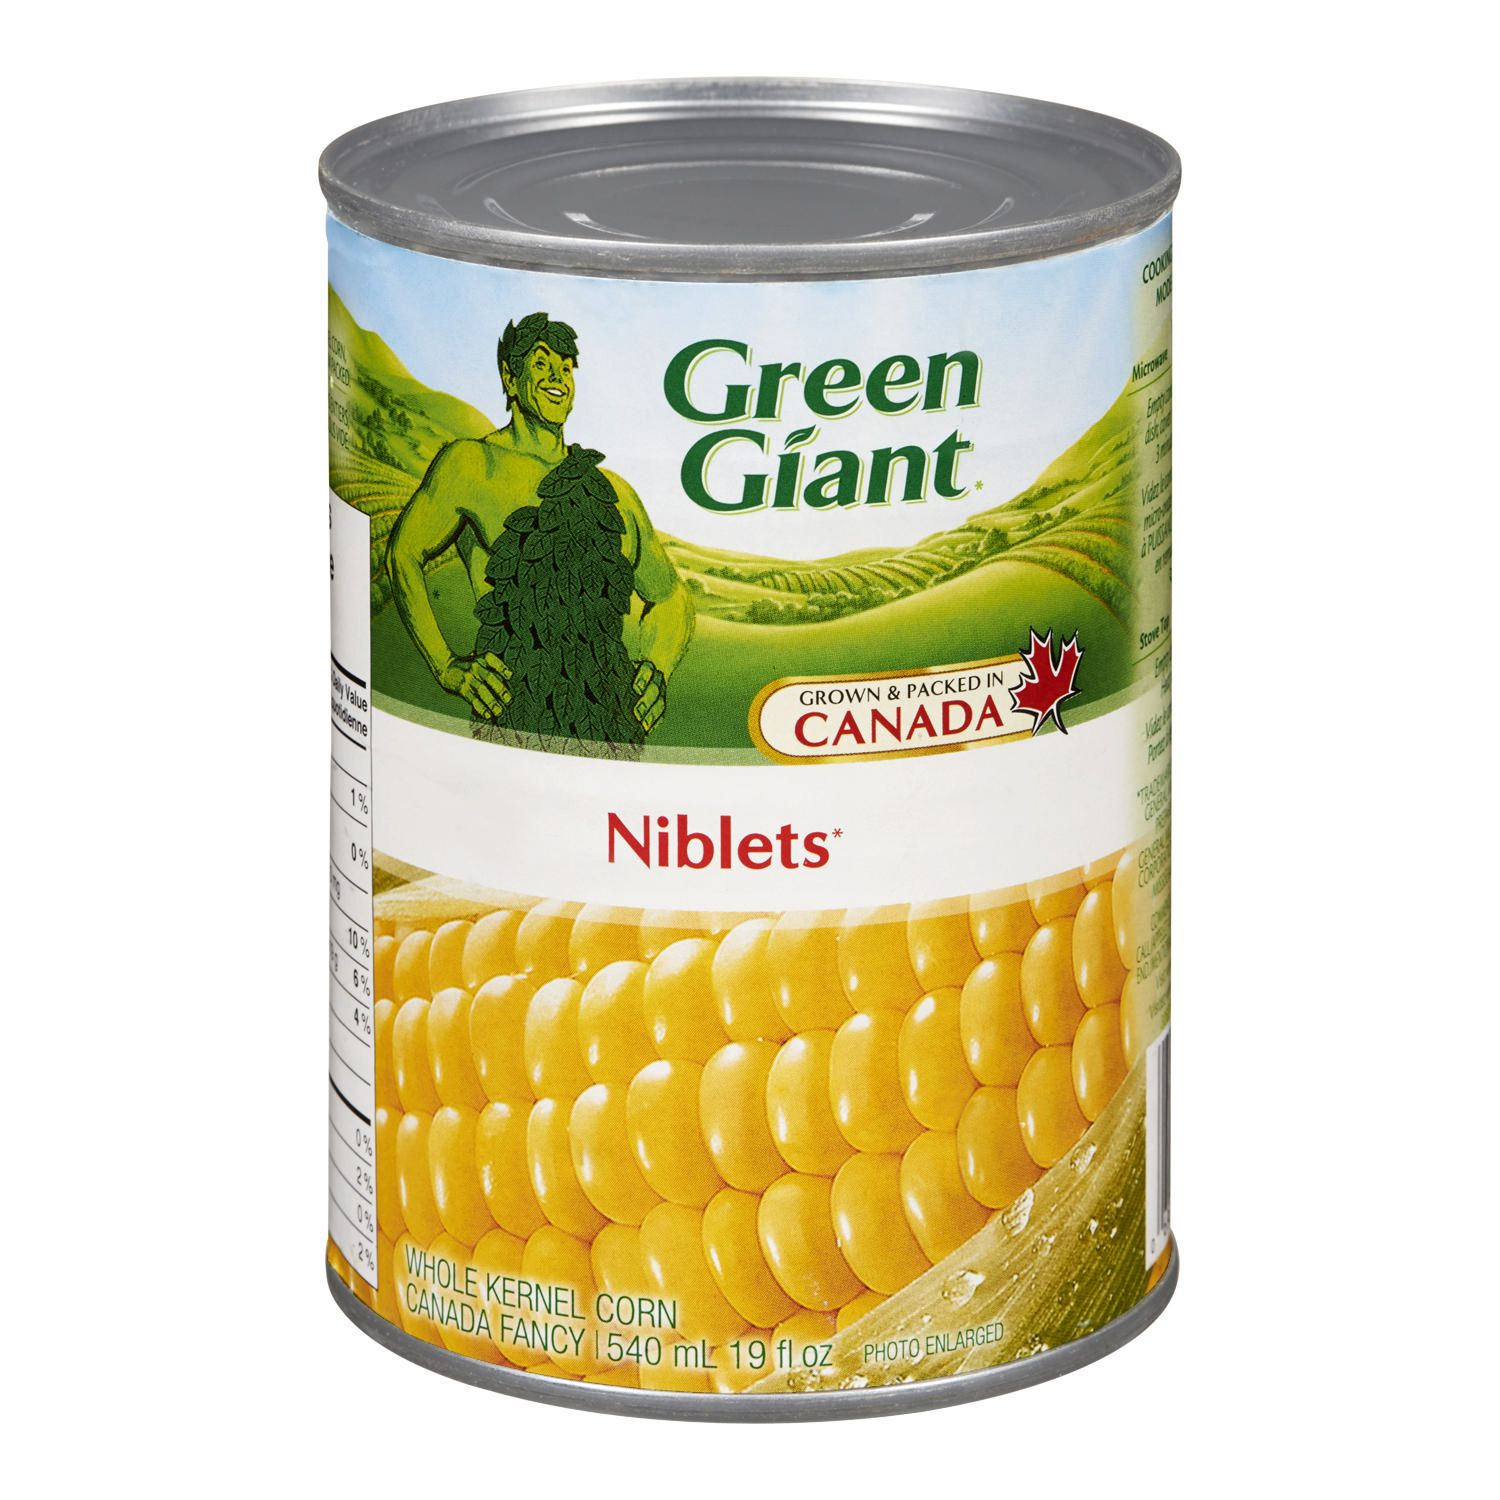 green giant canned whole kernel corn niblets walmart canada